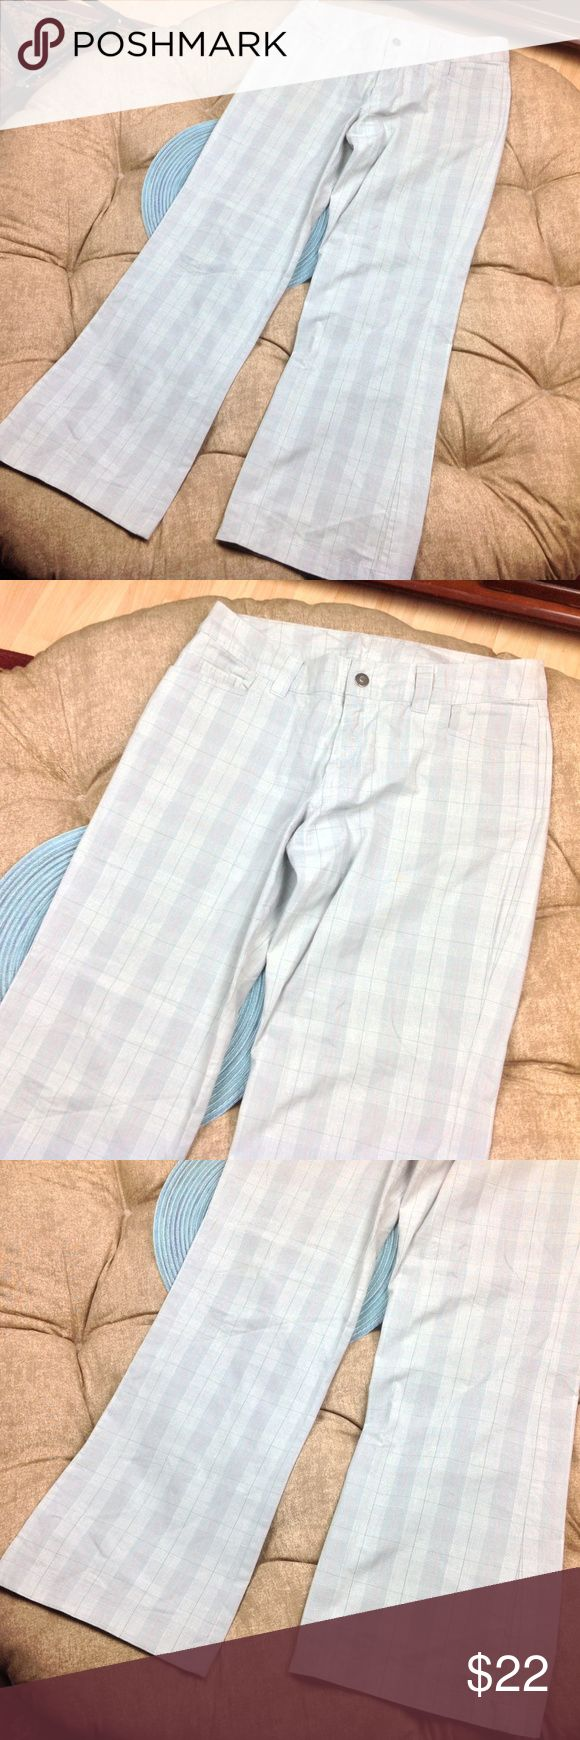 Patagonia Pants Women 12 Wide Leg Green Plaid Great condition; Patagonia Pants Women 12 Wide Leg Light Green Plaid Organic Cotton Casual Pockets; Very Light Green/Silver Plaid 32 inch inseam 17.5 inch across waist 10 inch rise Patagonia Pants Wide Leg